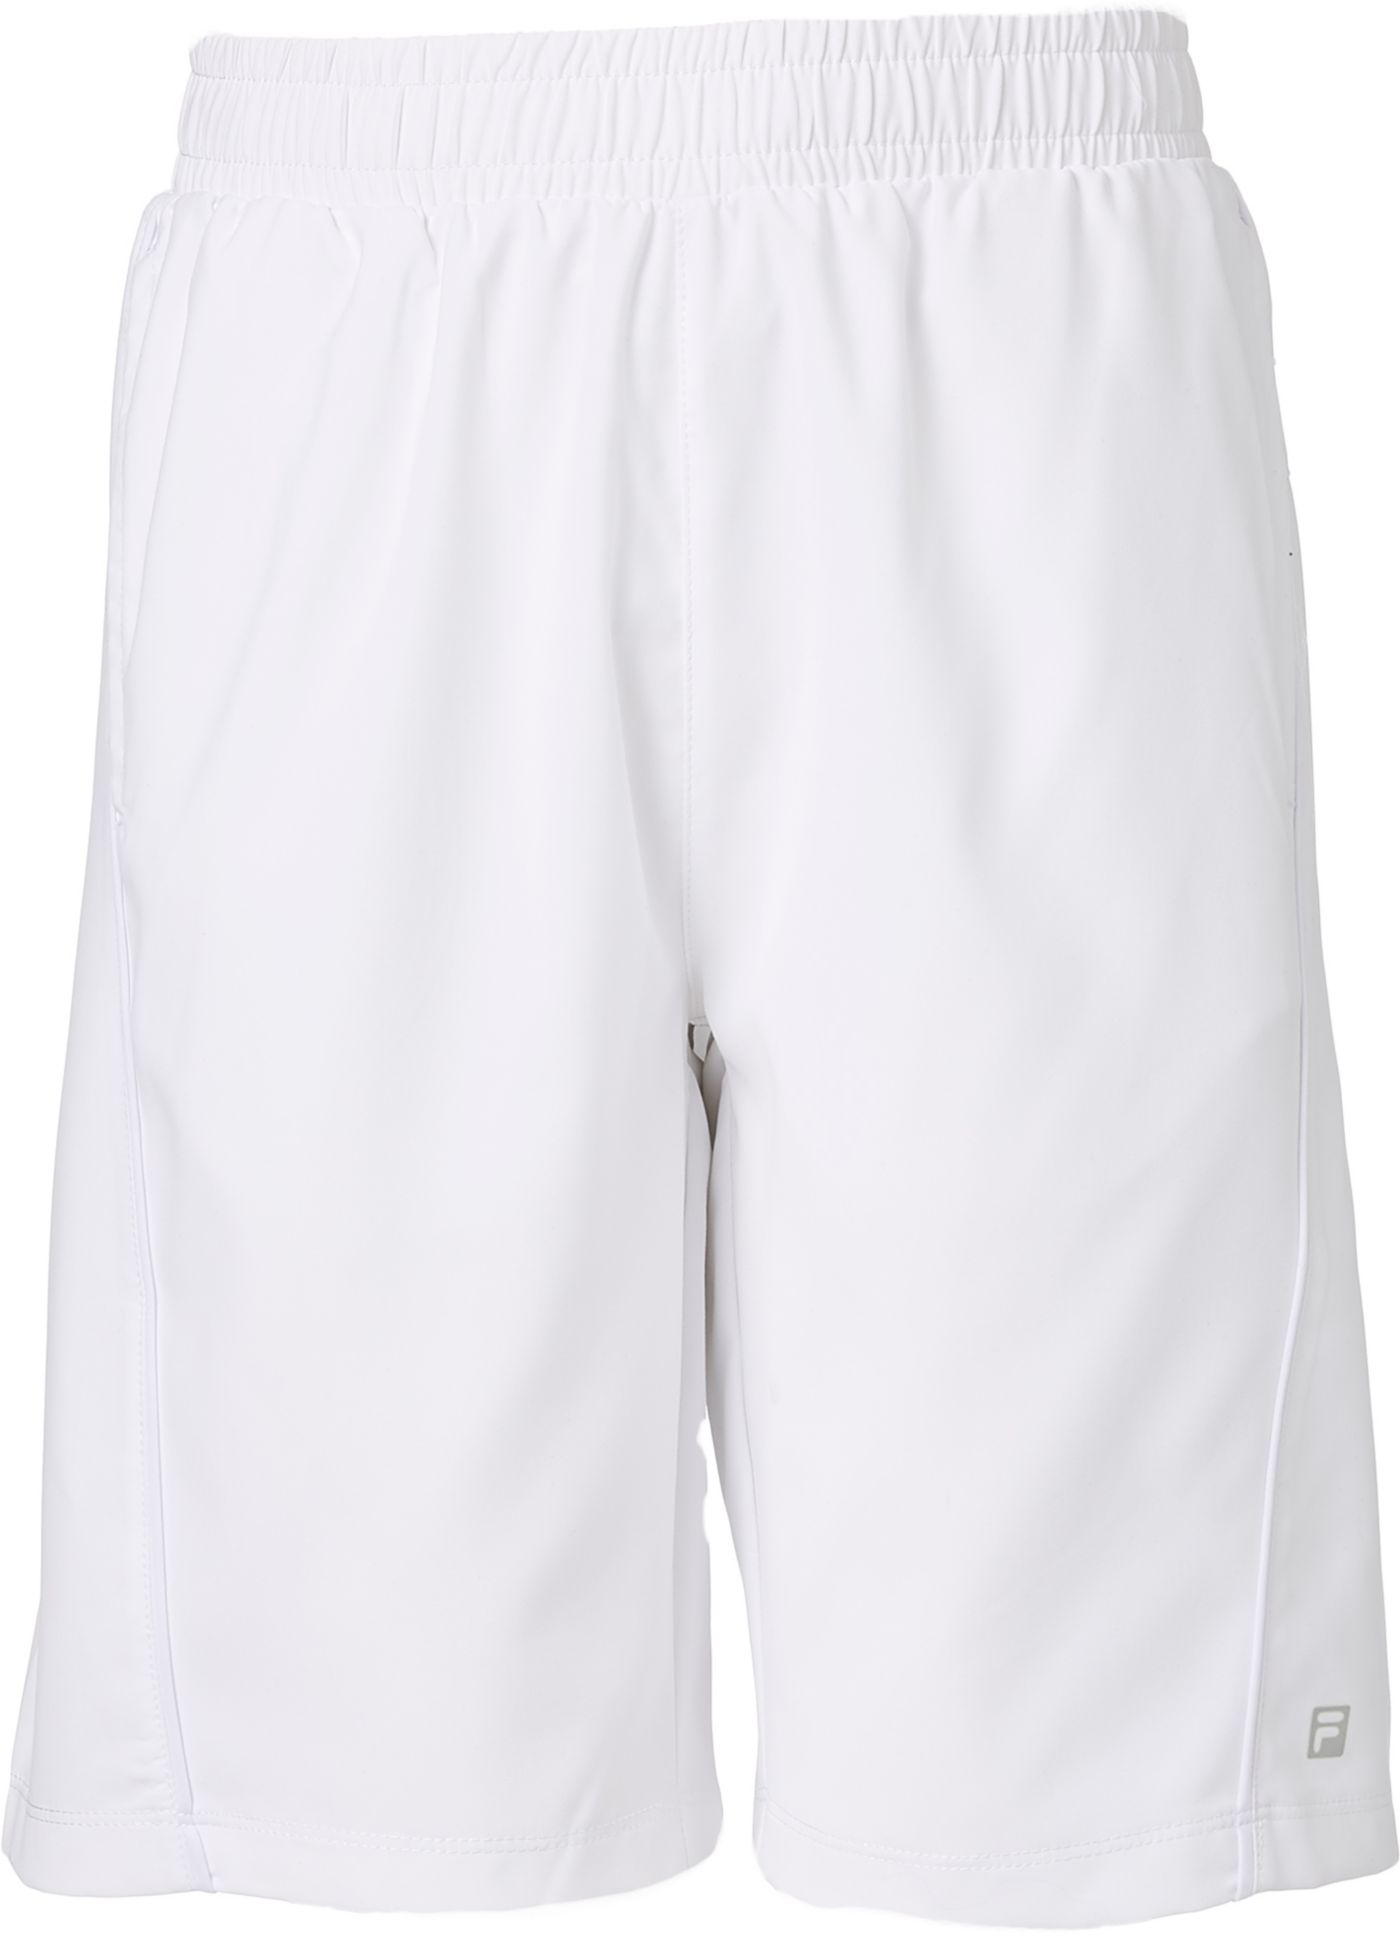 Fila Boys' Fundamental Piped Tennis Shorts